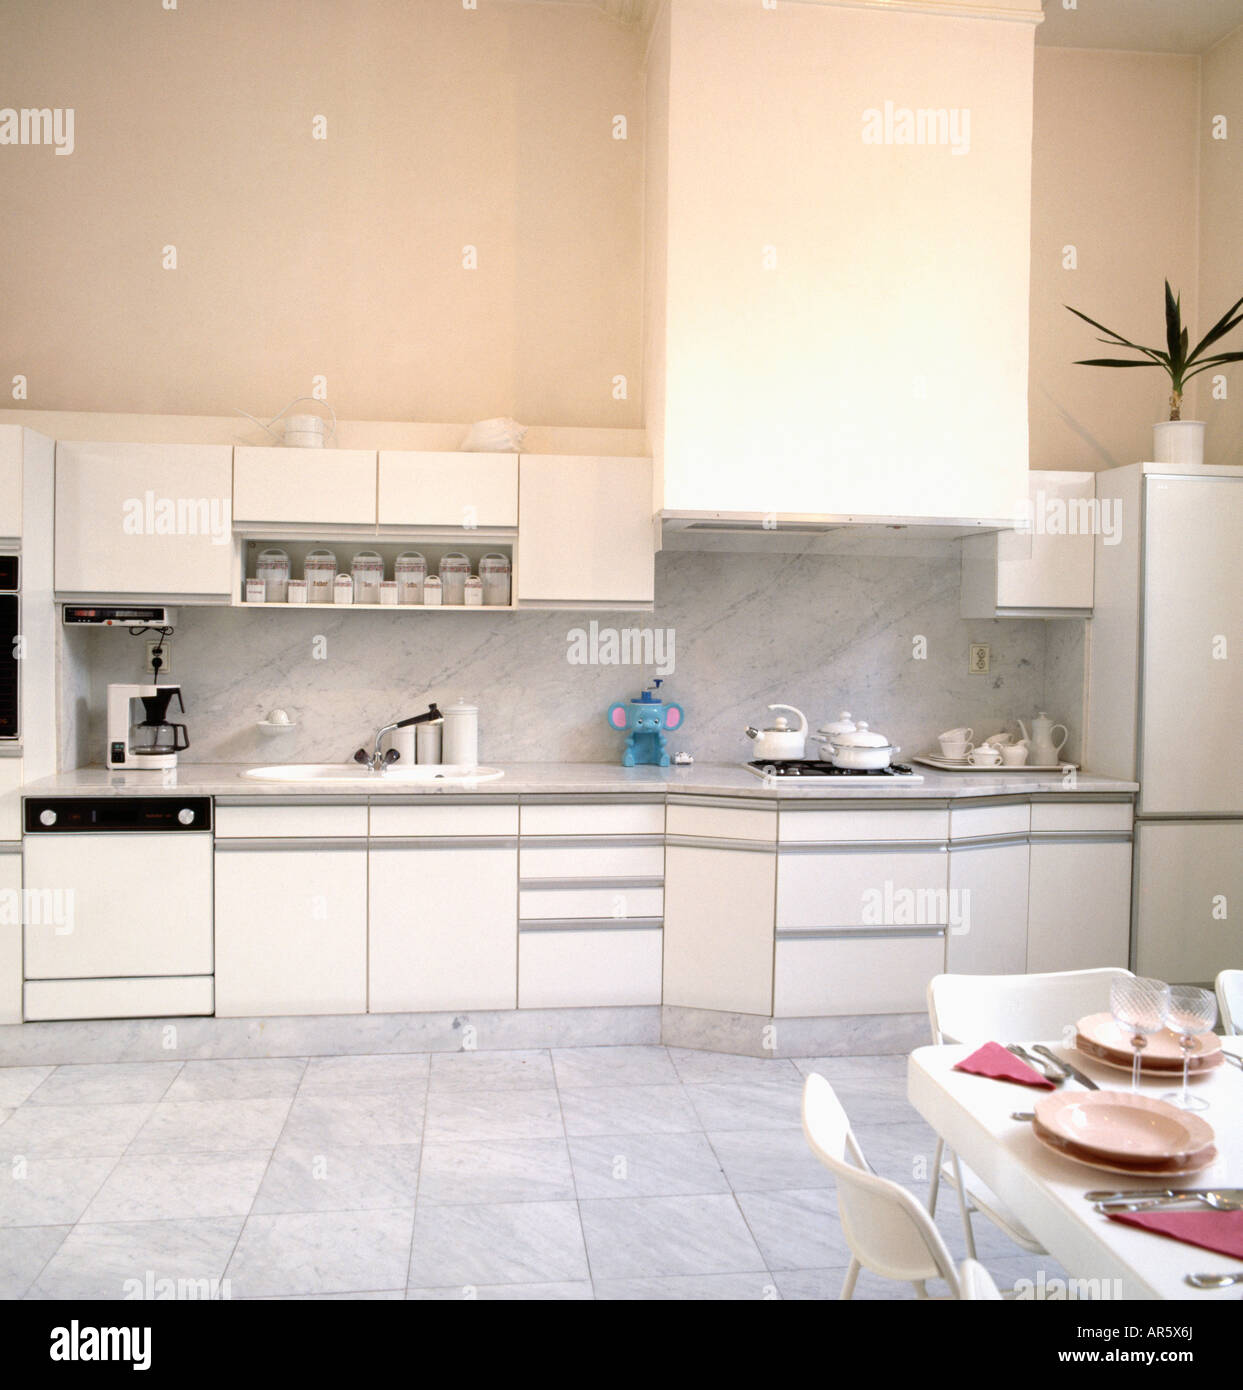 Grey Marble Floor Tiles In Neutral Eighties Fitted Kitchen Stock Photo Alamy